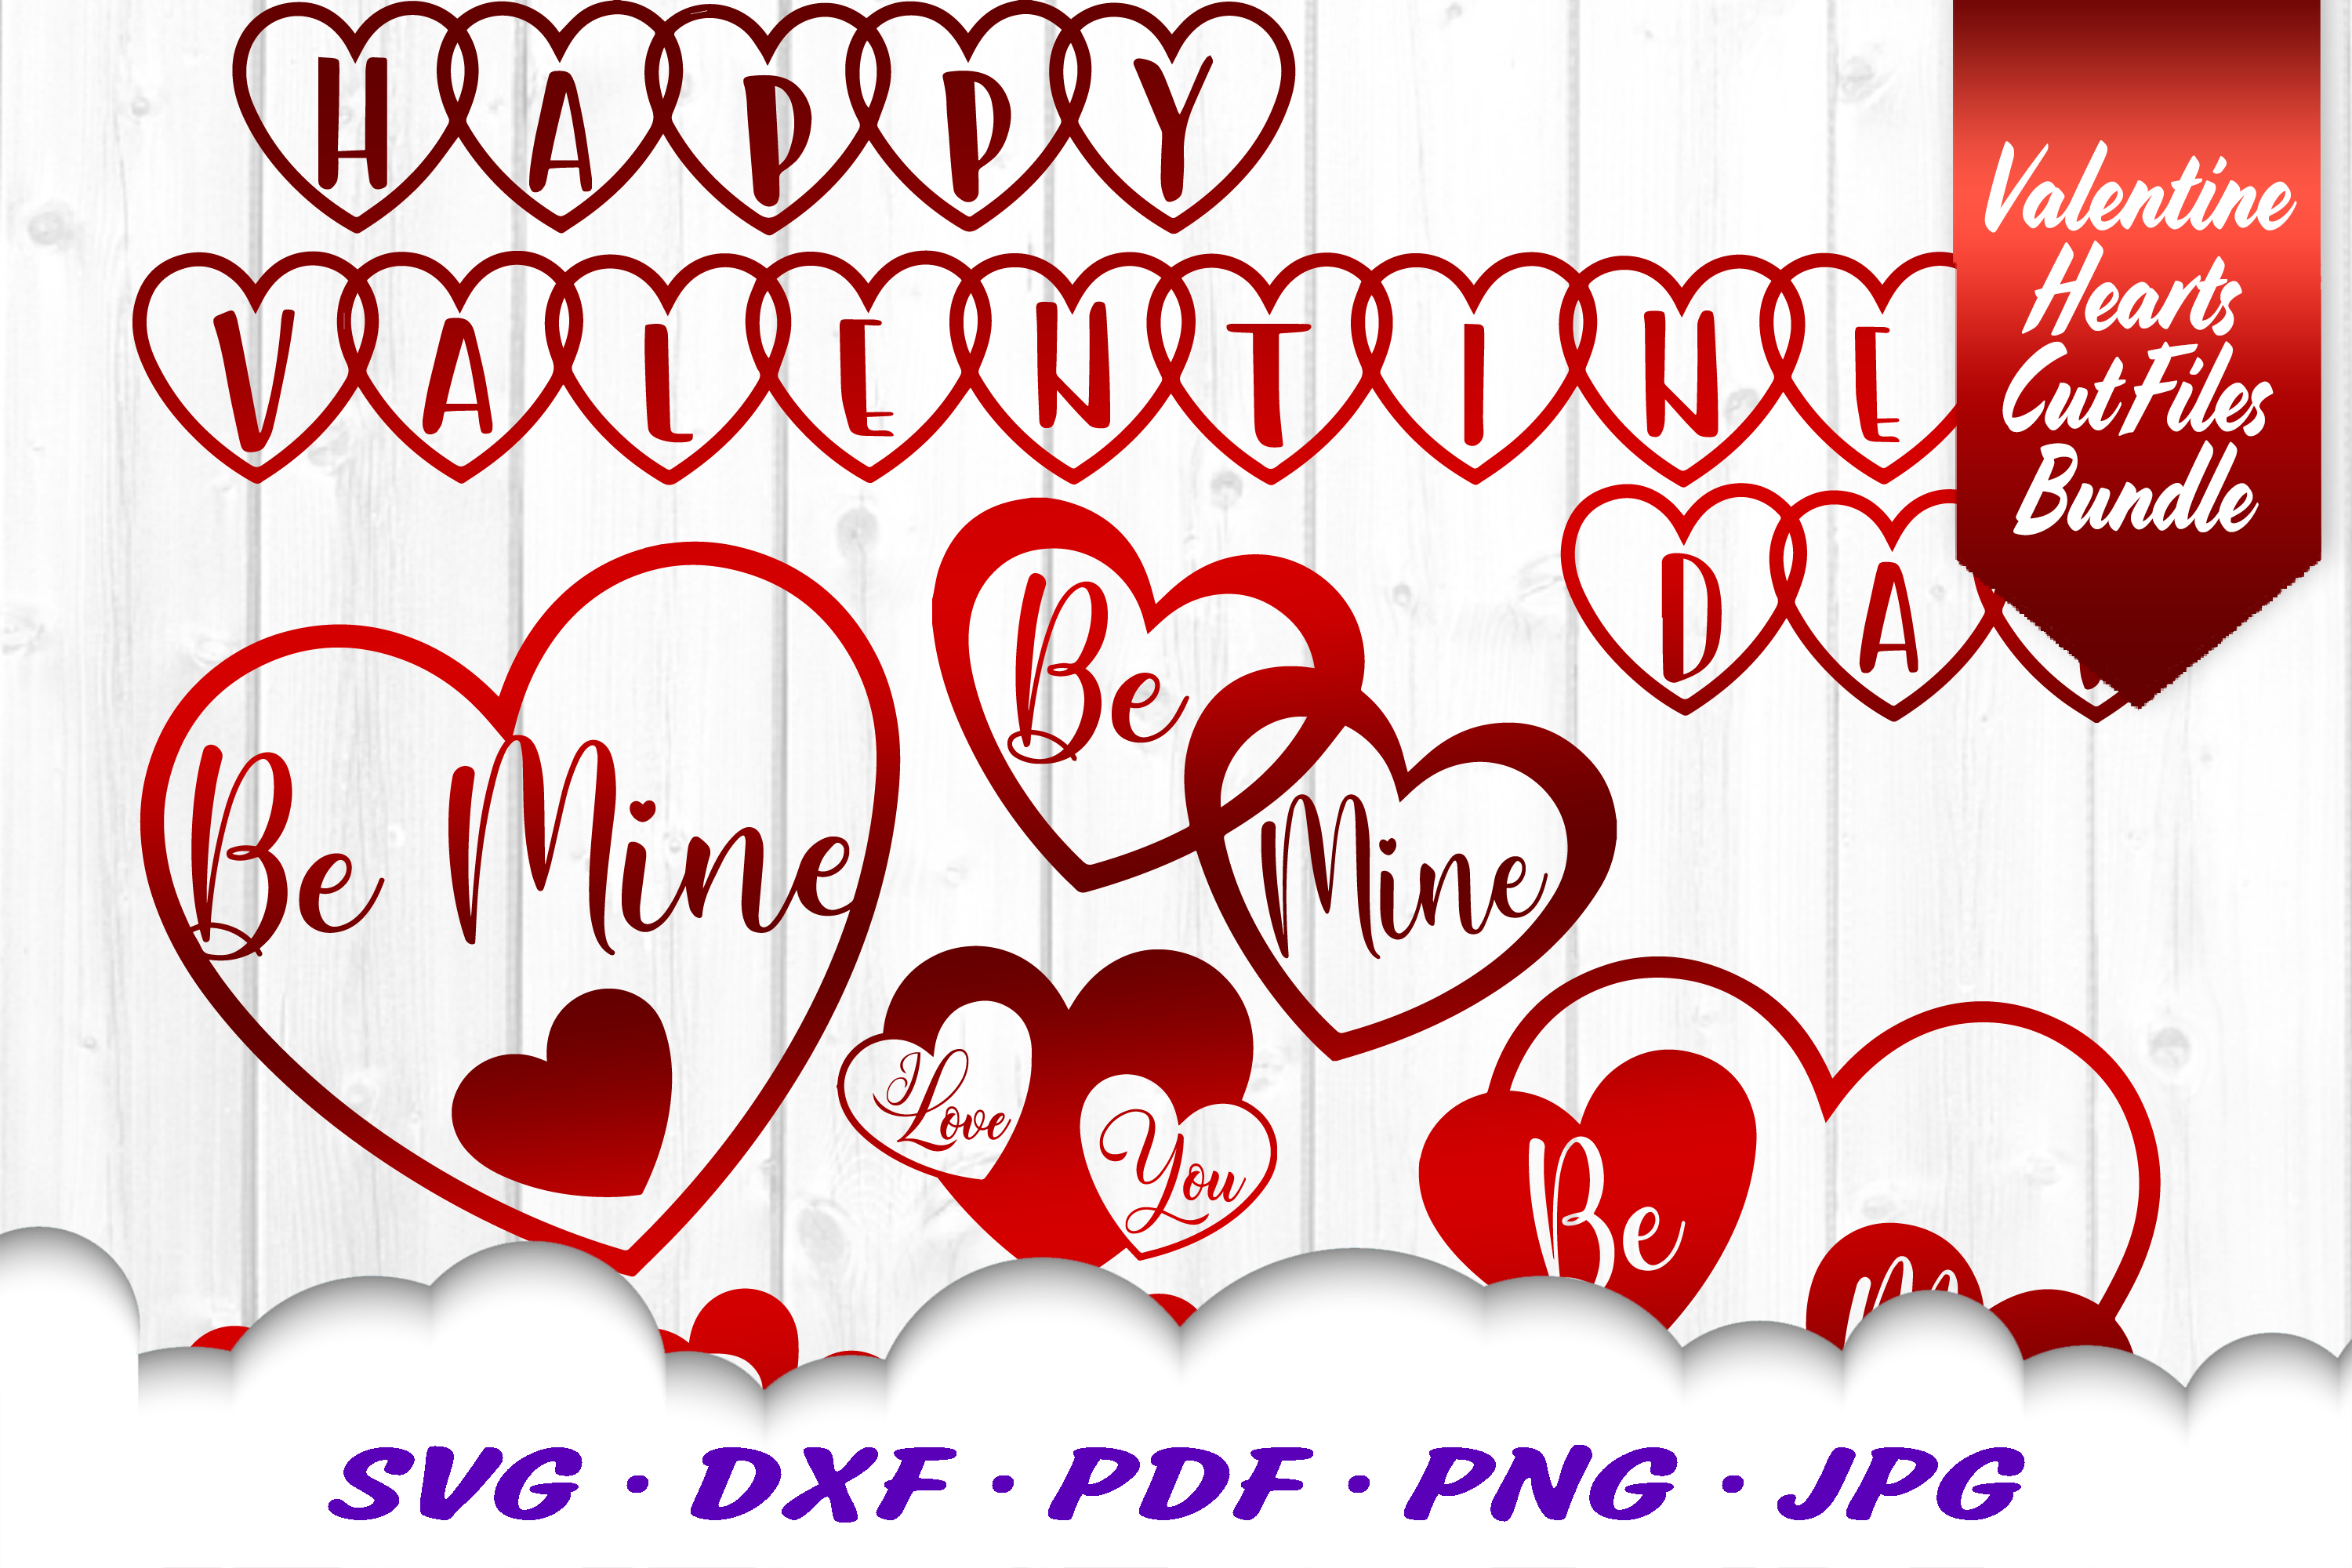 Valentines Day Hearts SVG DXF Cut Files Bundle example image 2